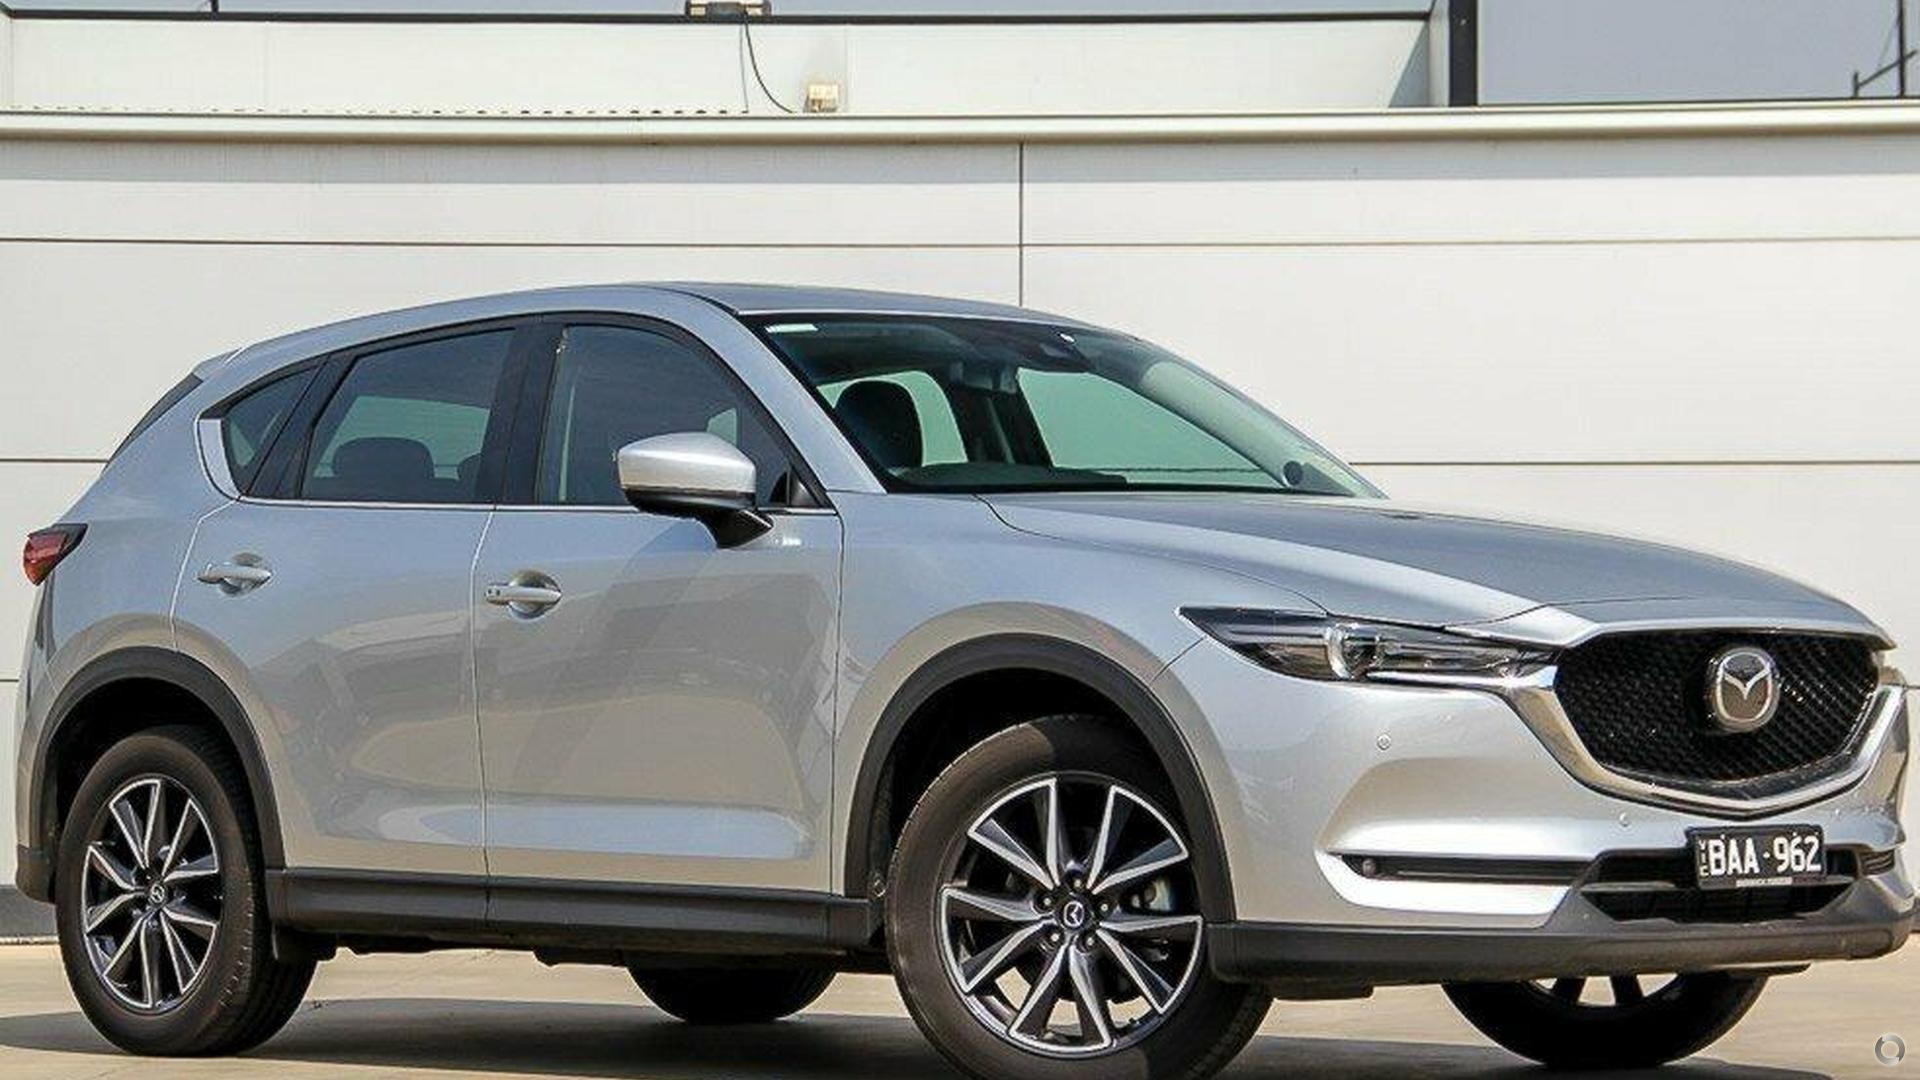 2019 Mazda Cx-5 KF Series